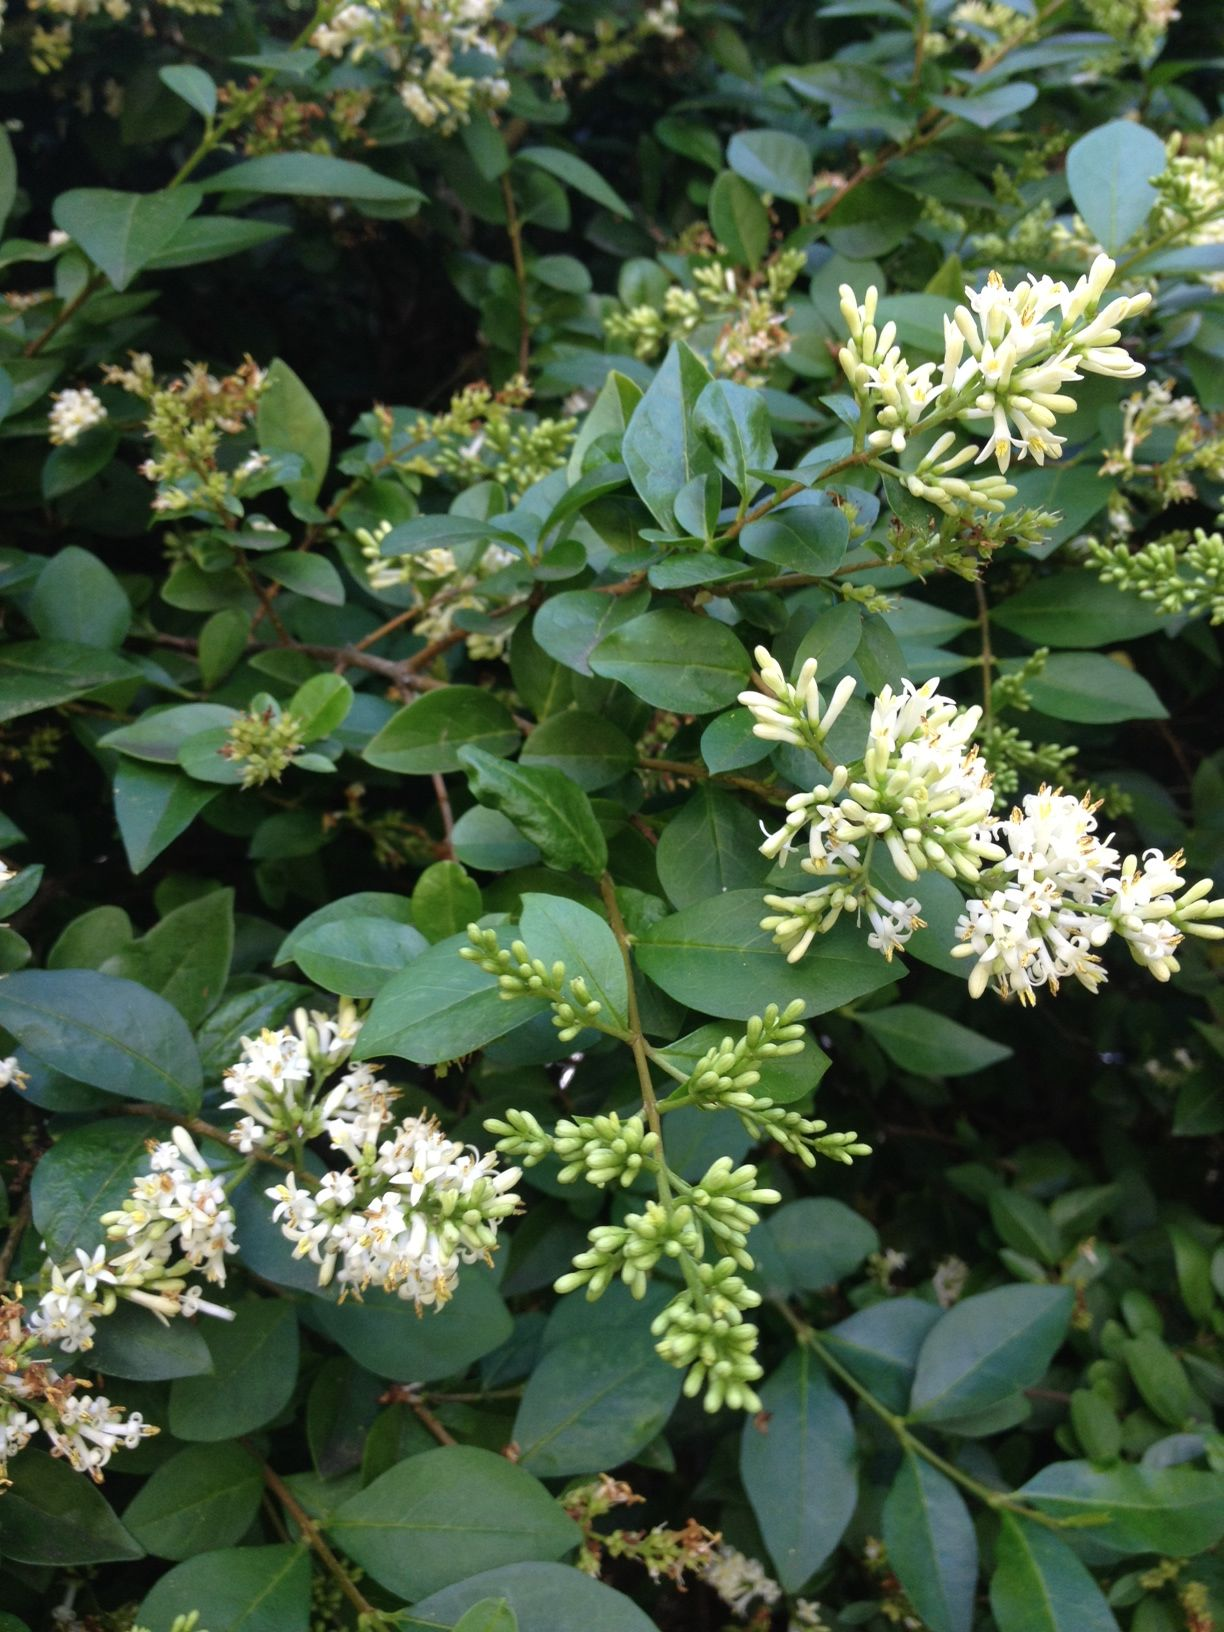 Outdoor Privet Hedge Plants For Admirable Garden And Landscaping